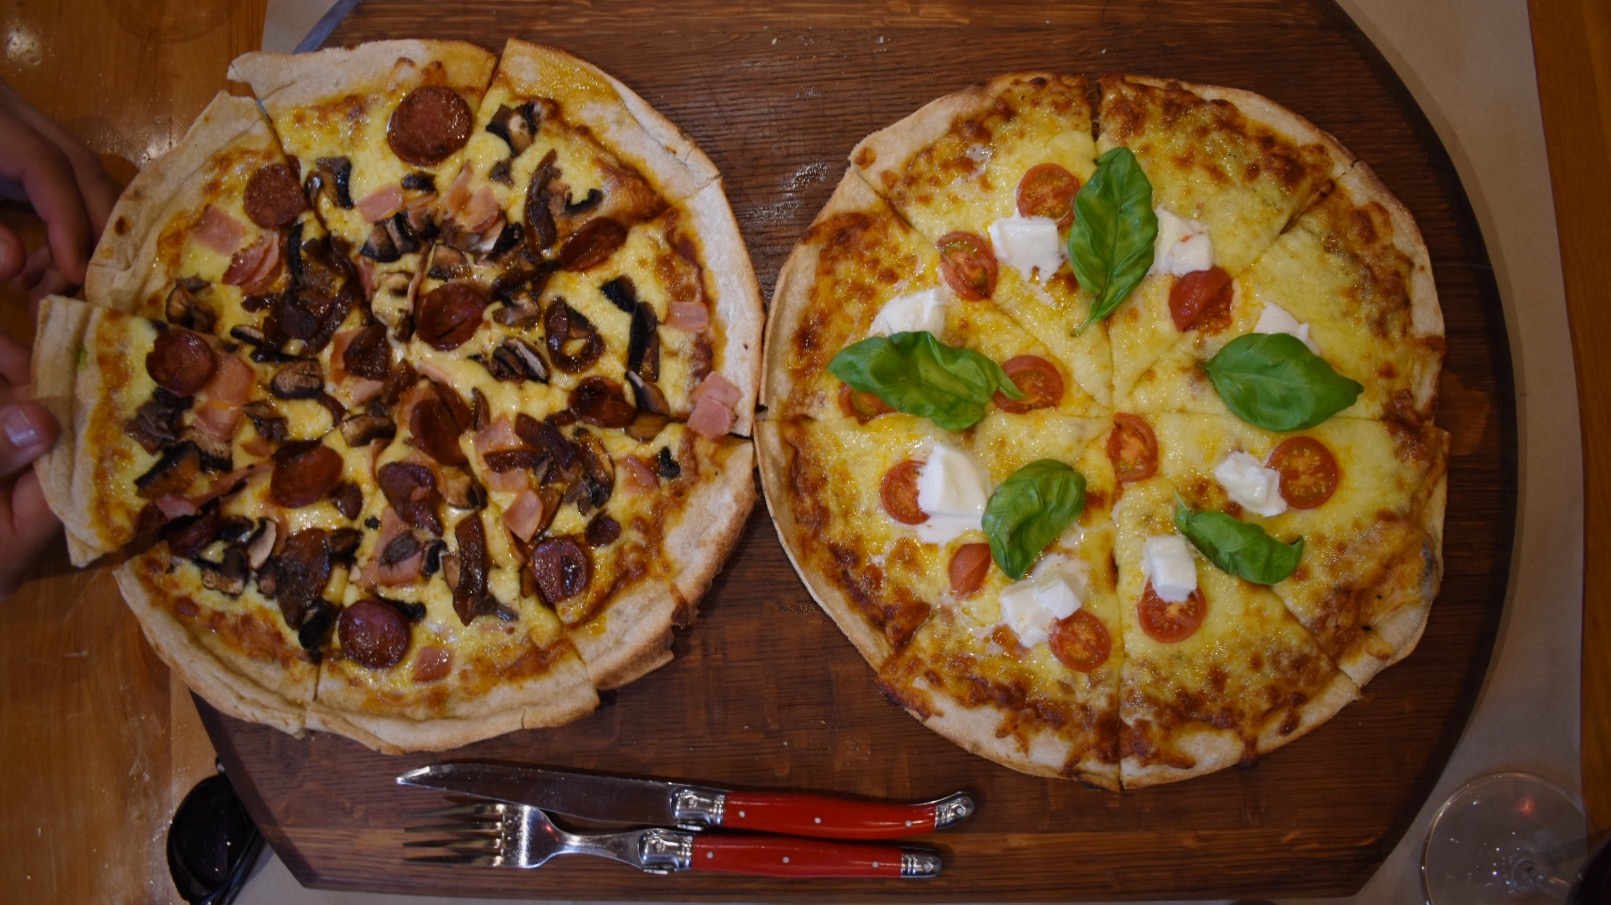 Food item #1459380329840 consumed on the weekend. How good are woodfired pizzas though?!